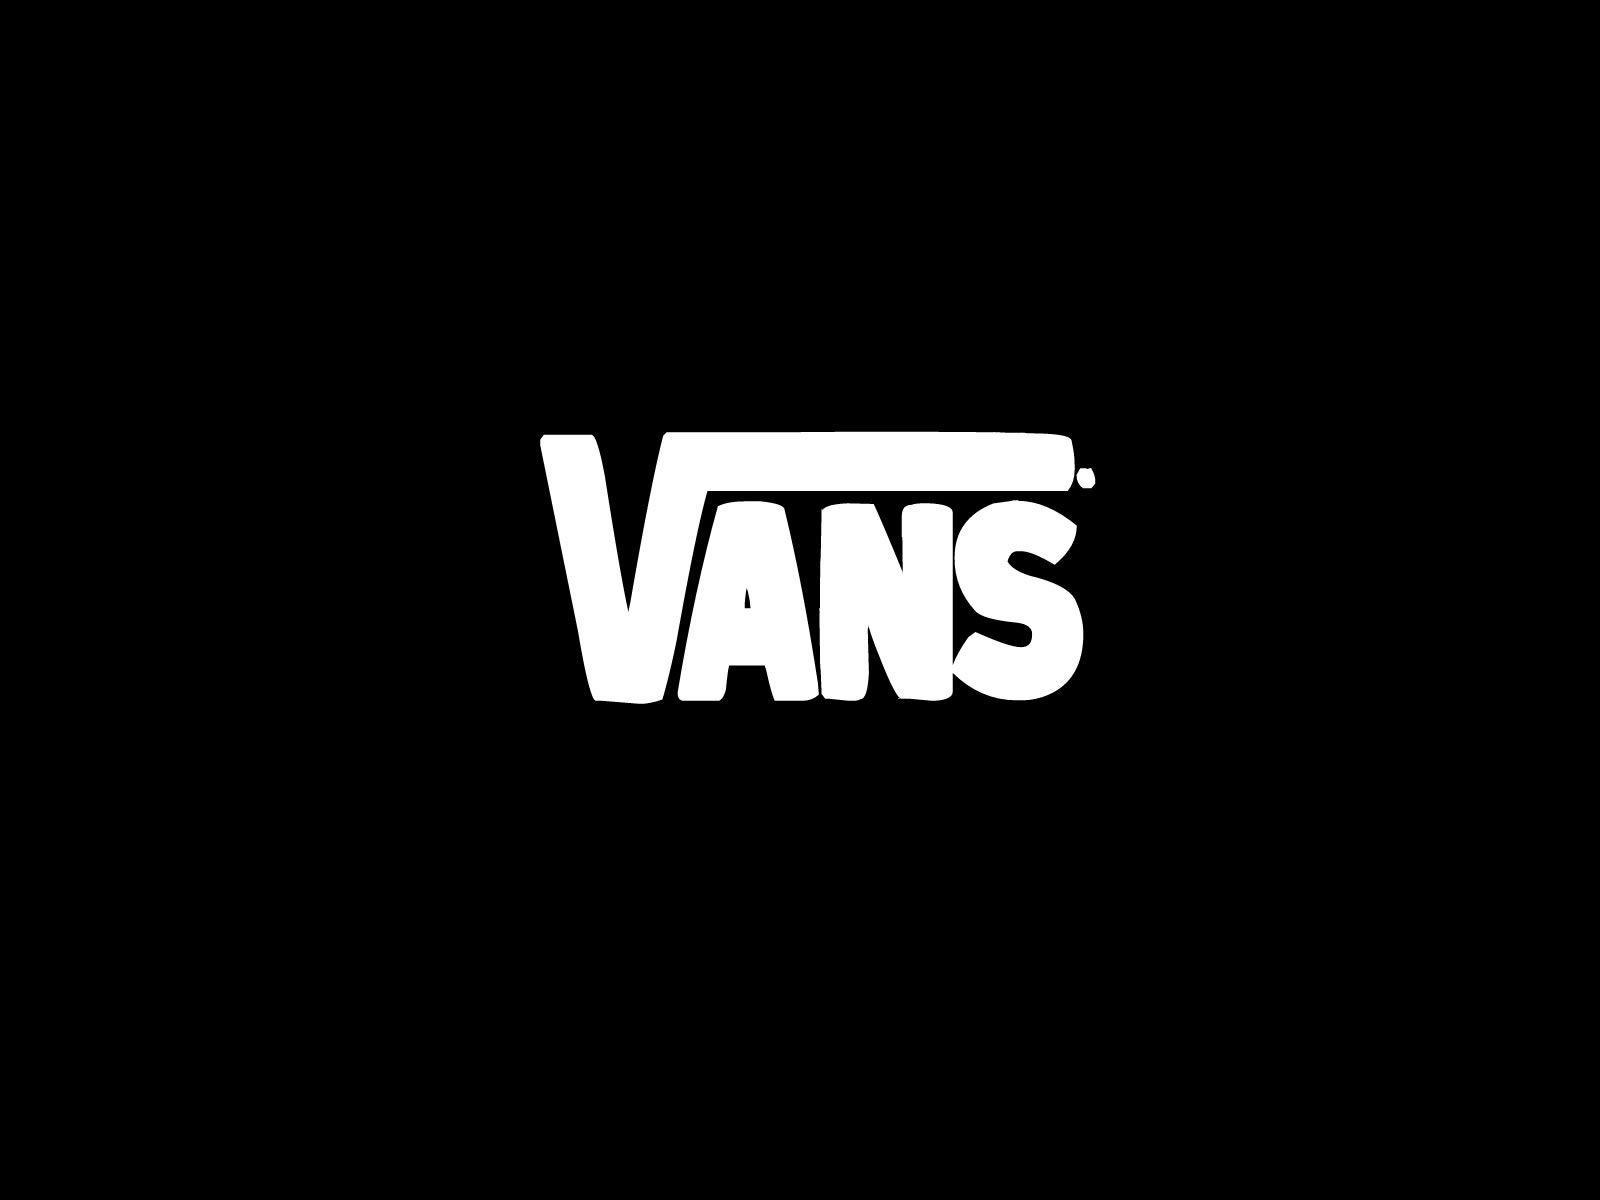 Wallpaper iphone kualitas hd - Images For Vans Logo Wallpaper